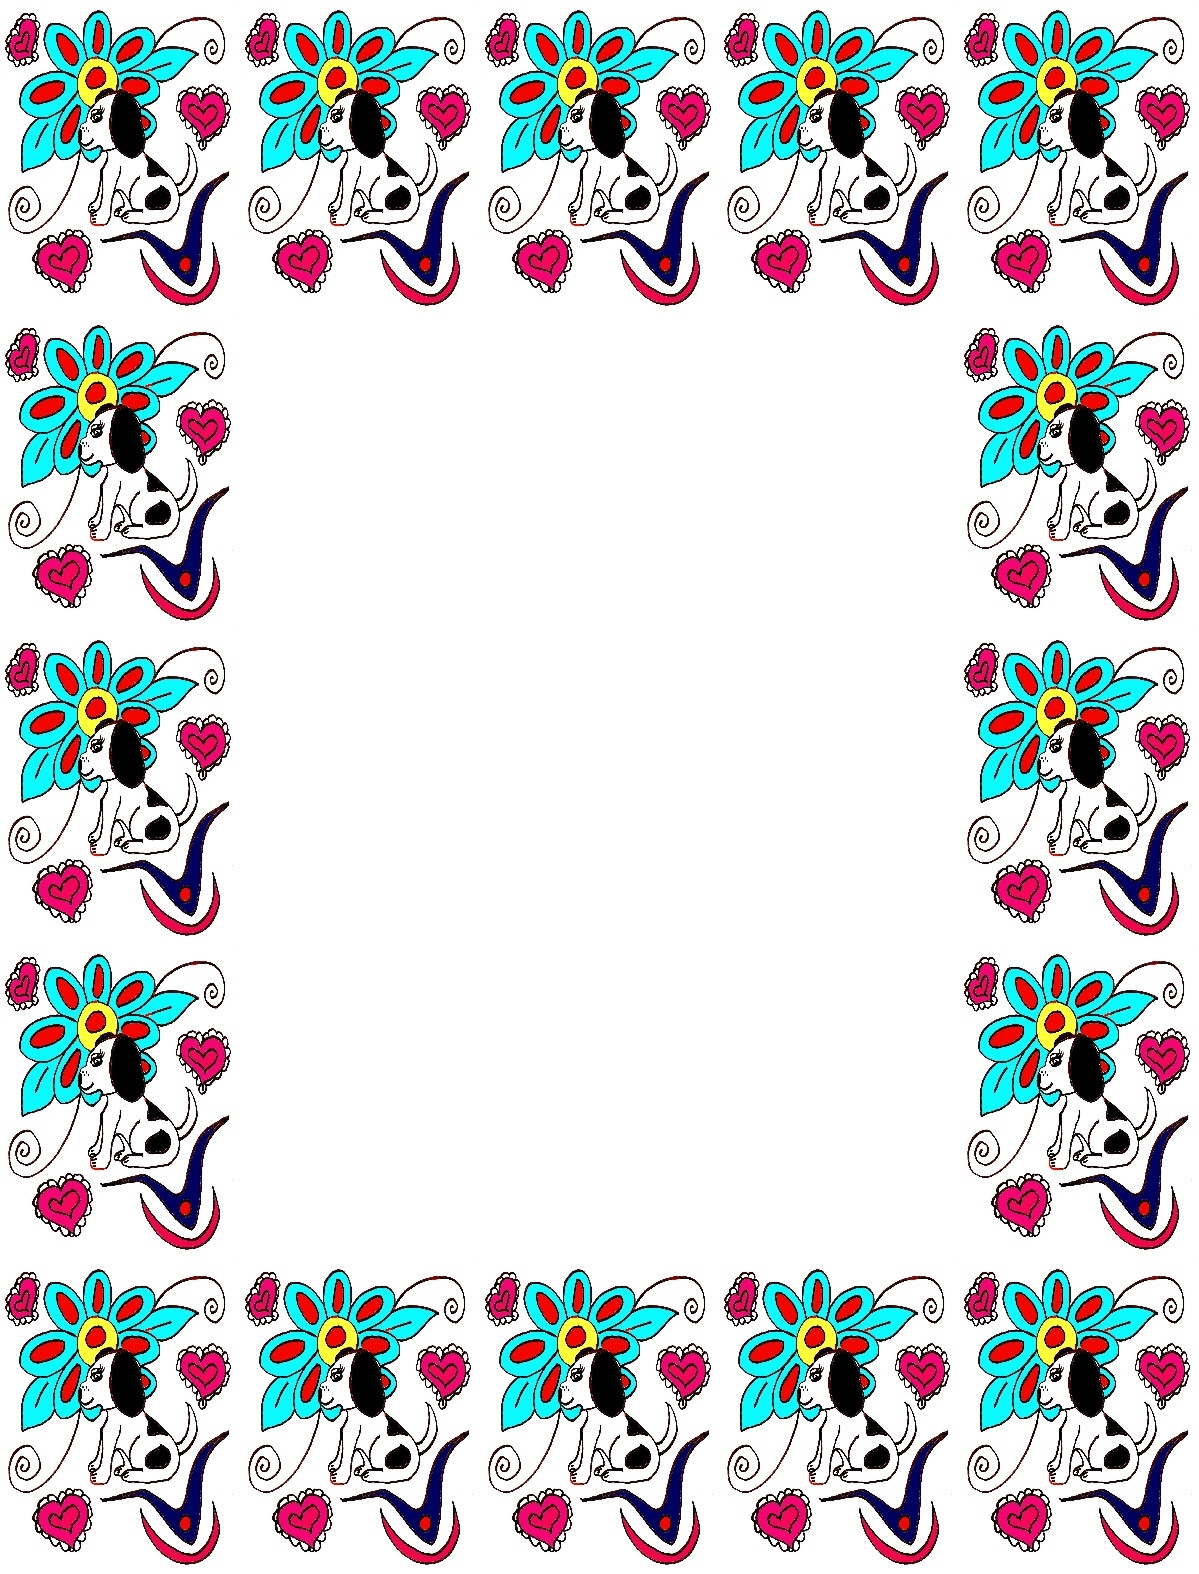 Cute Border Clipart - Cliparts.co